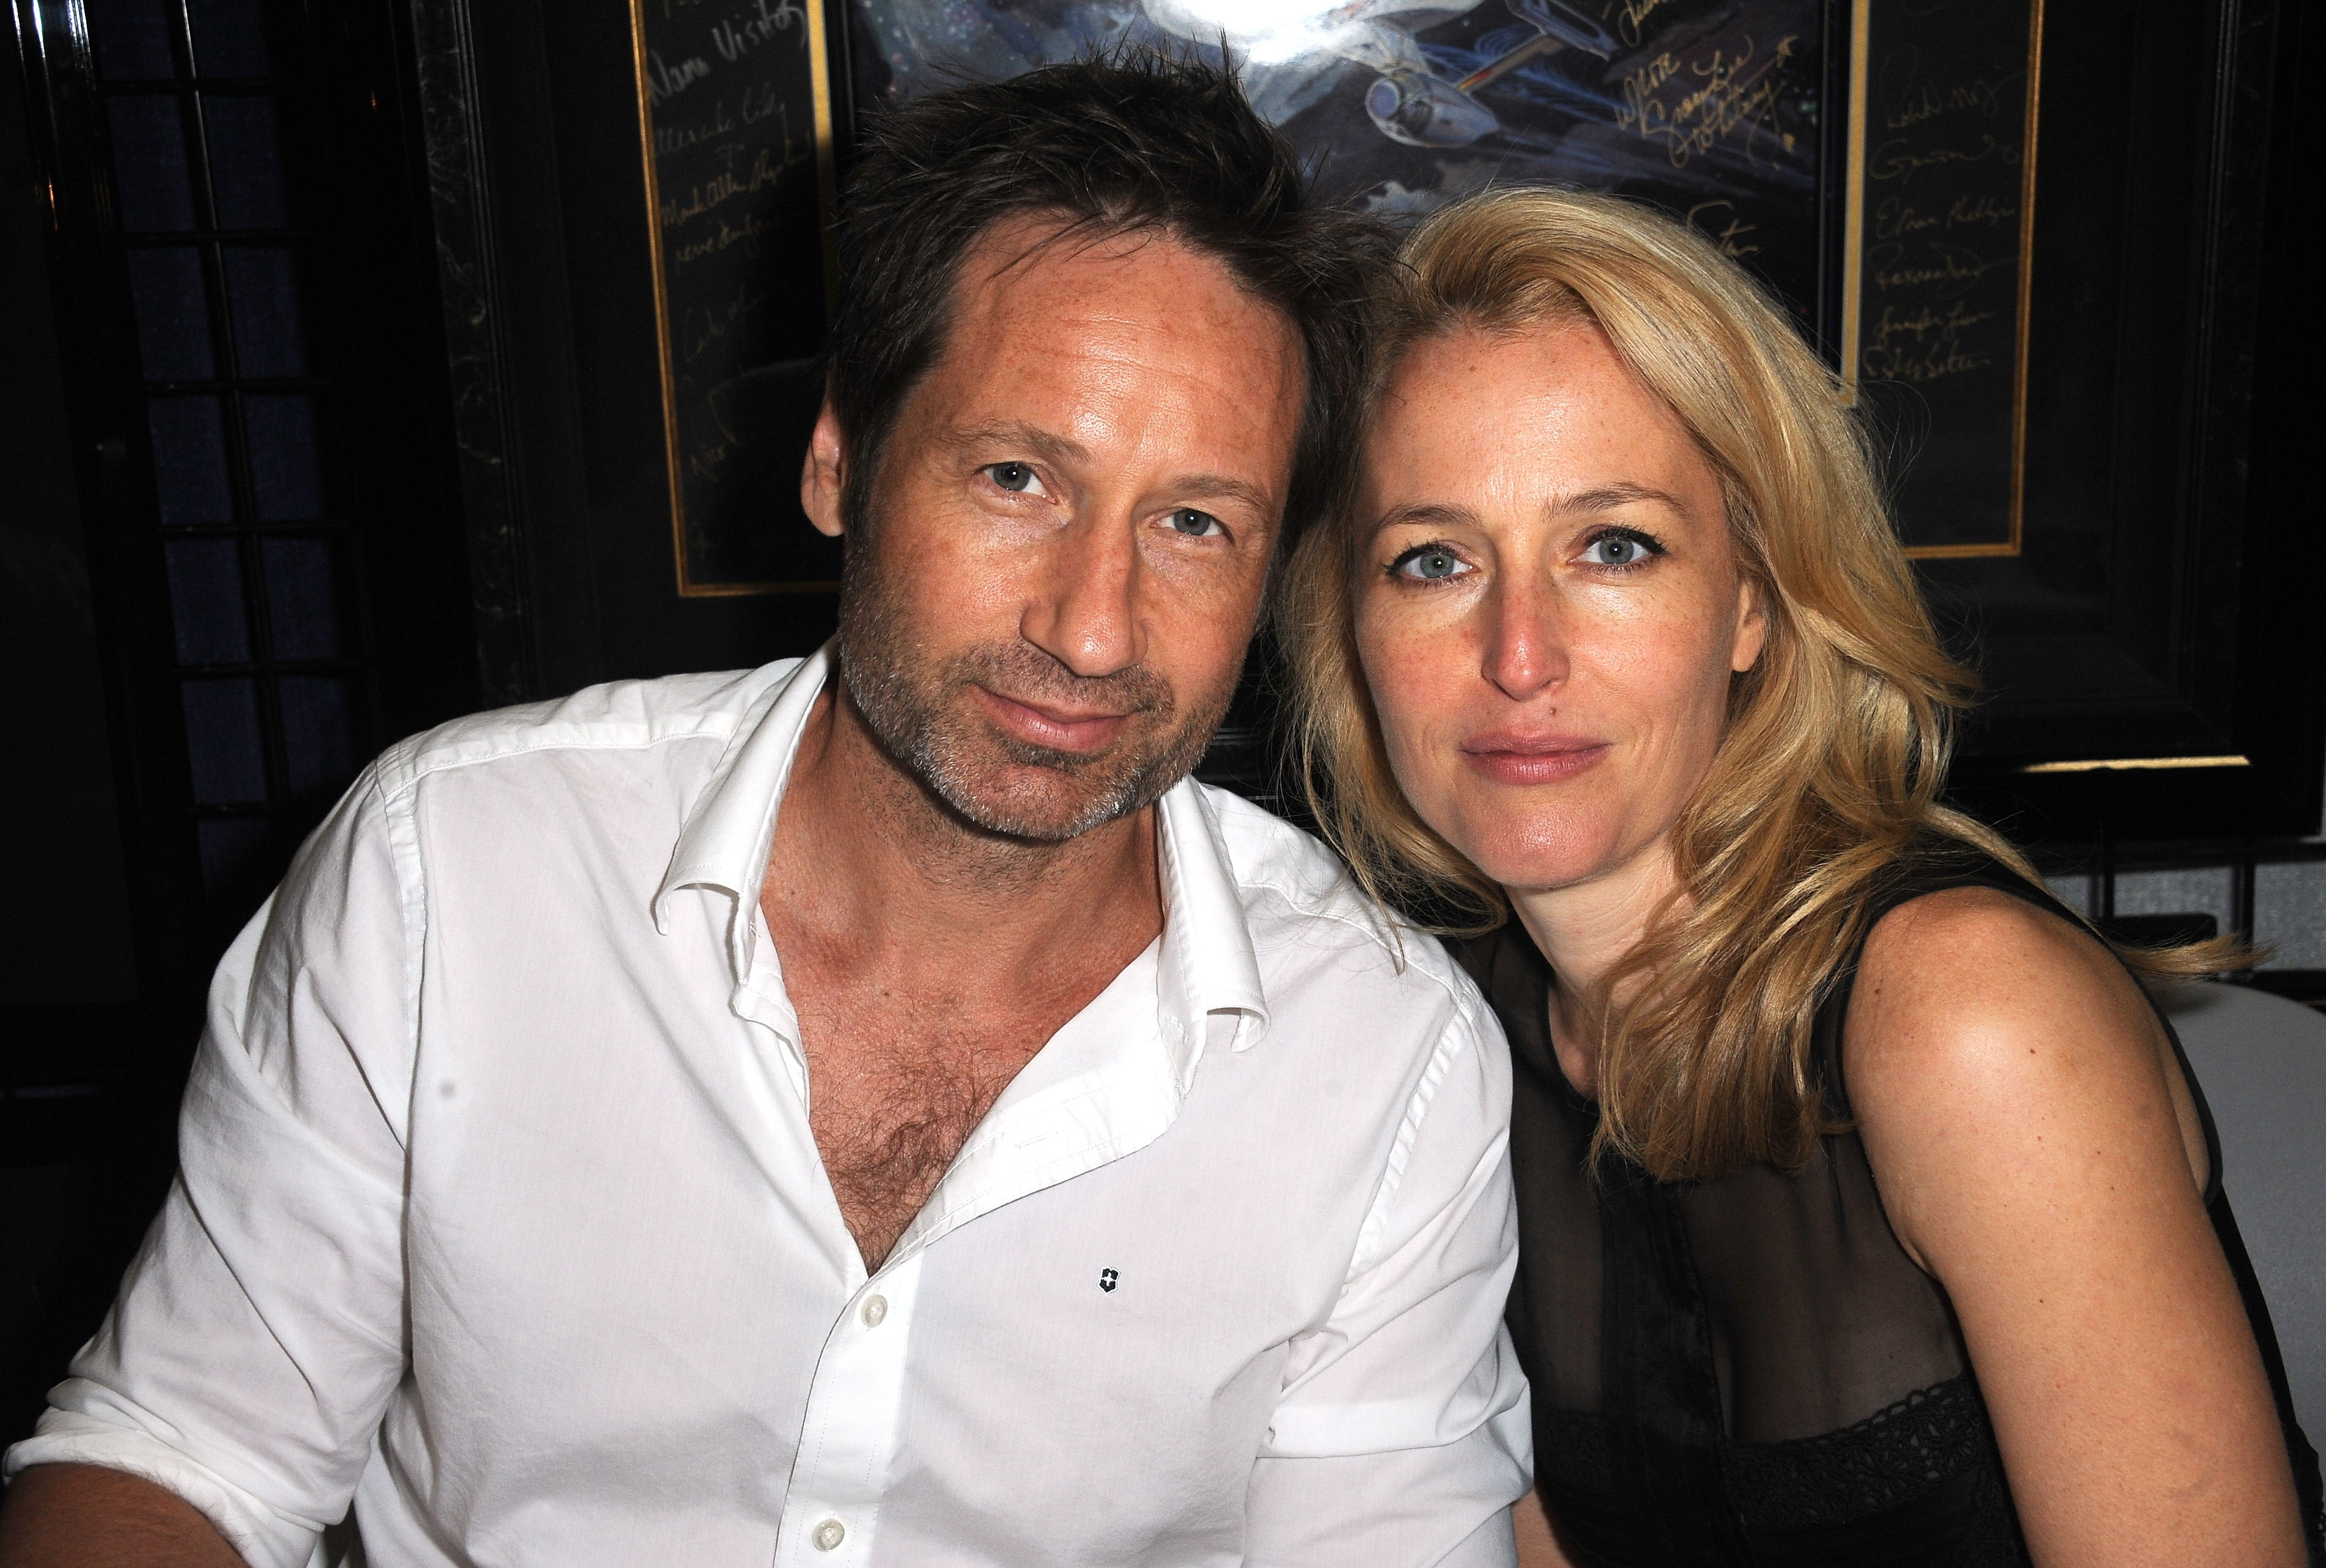 David Duchovny and Gillian Anderson are seen at Comic-Con in San Diego, Calif. on July 18, 2012.